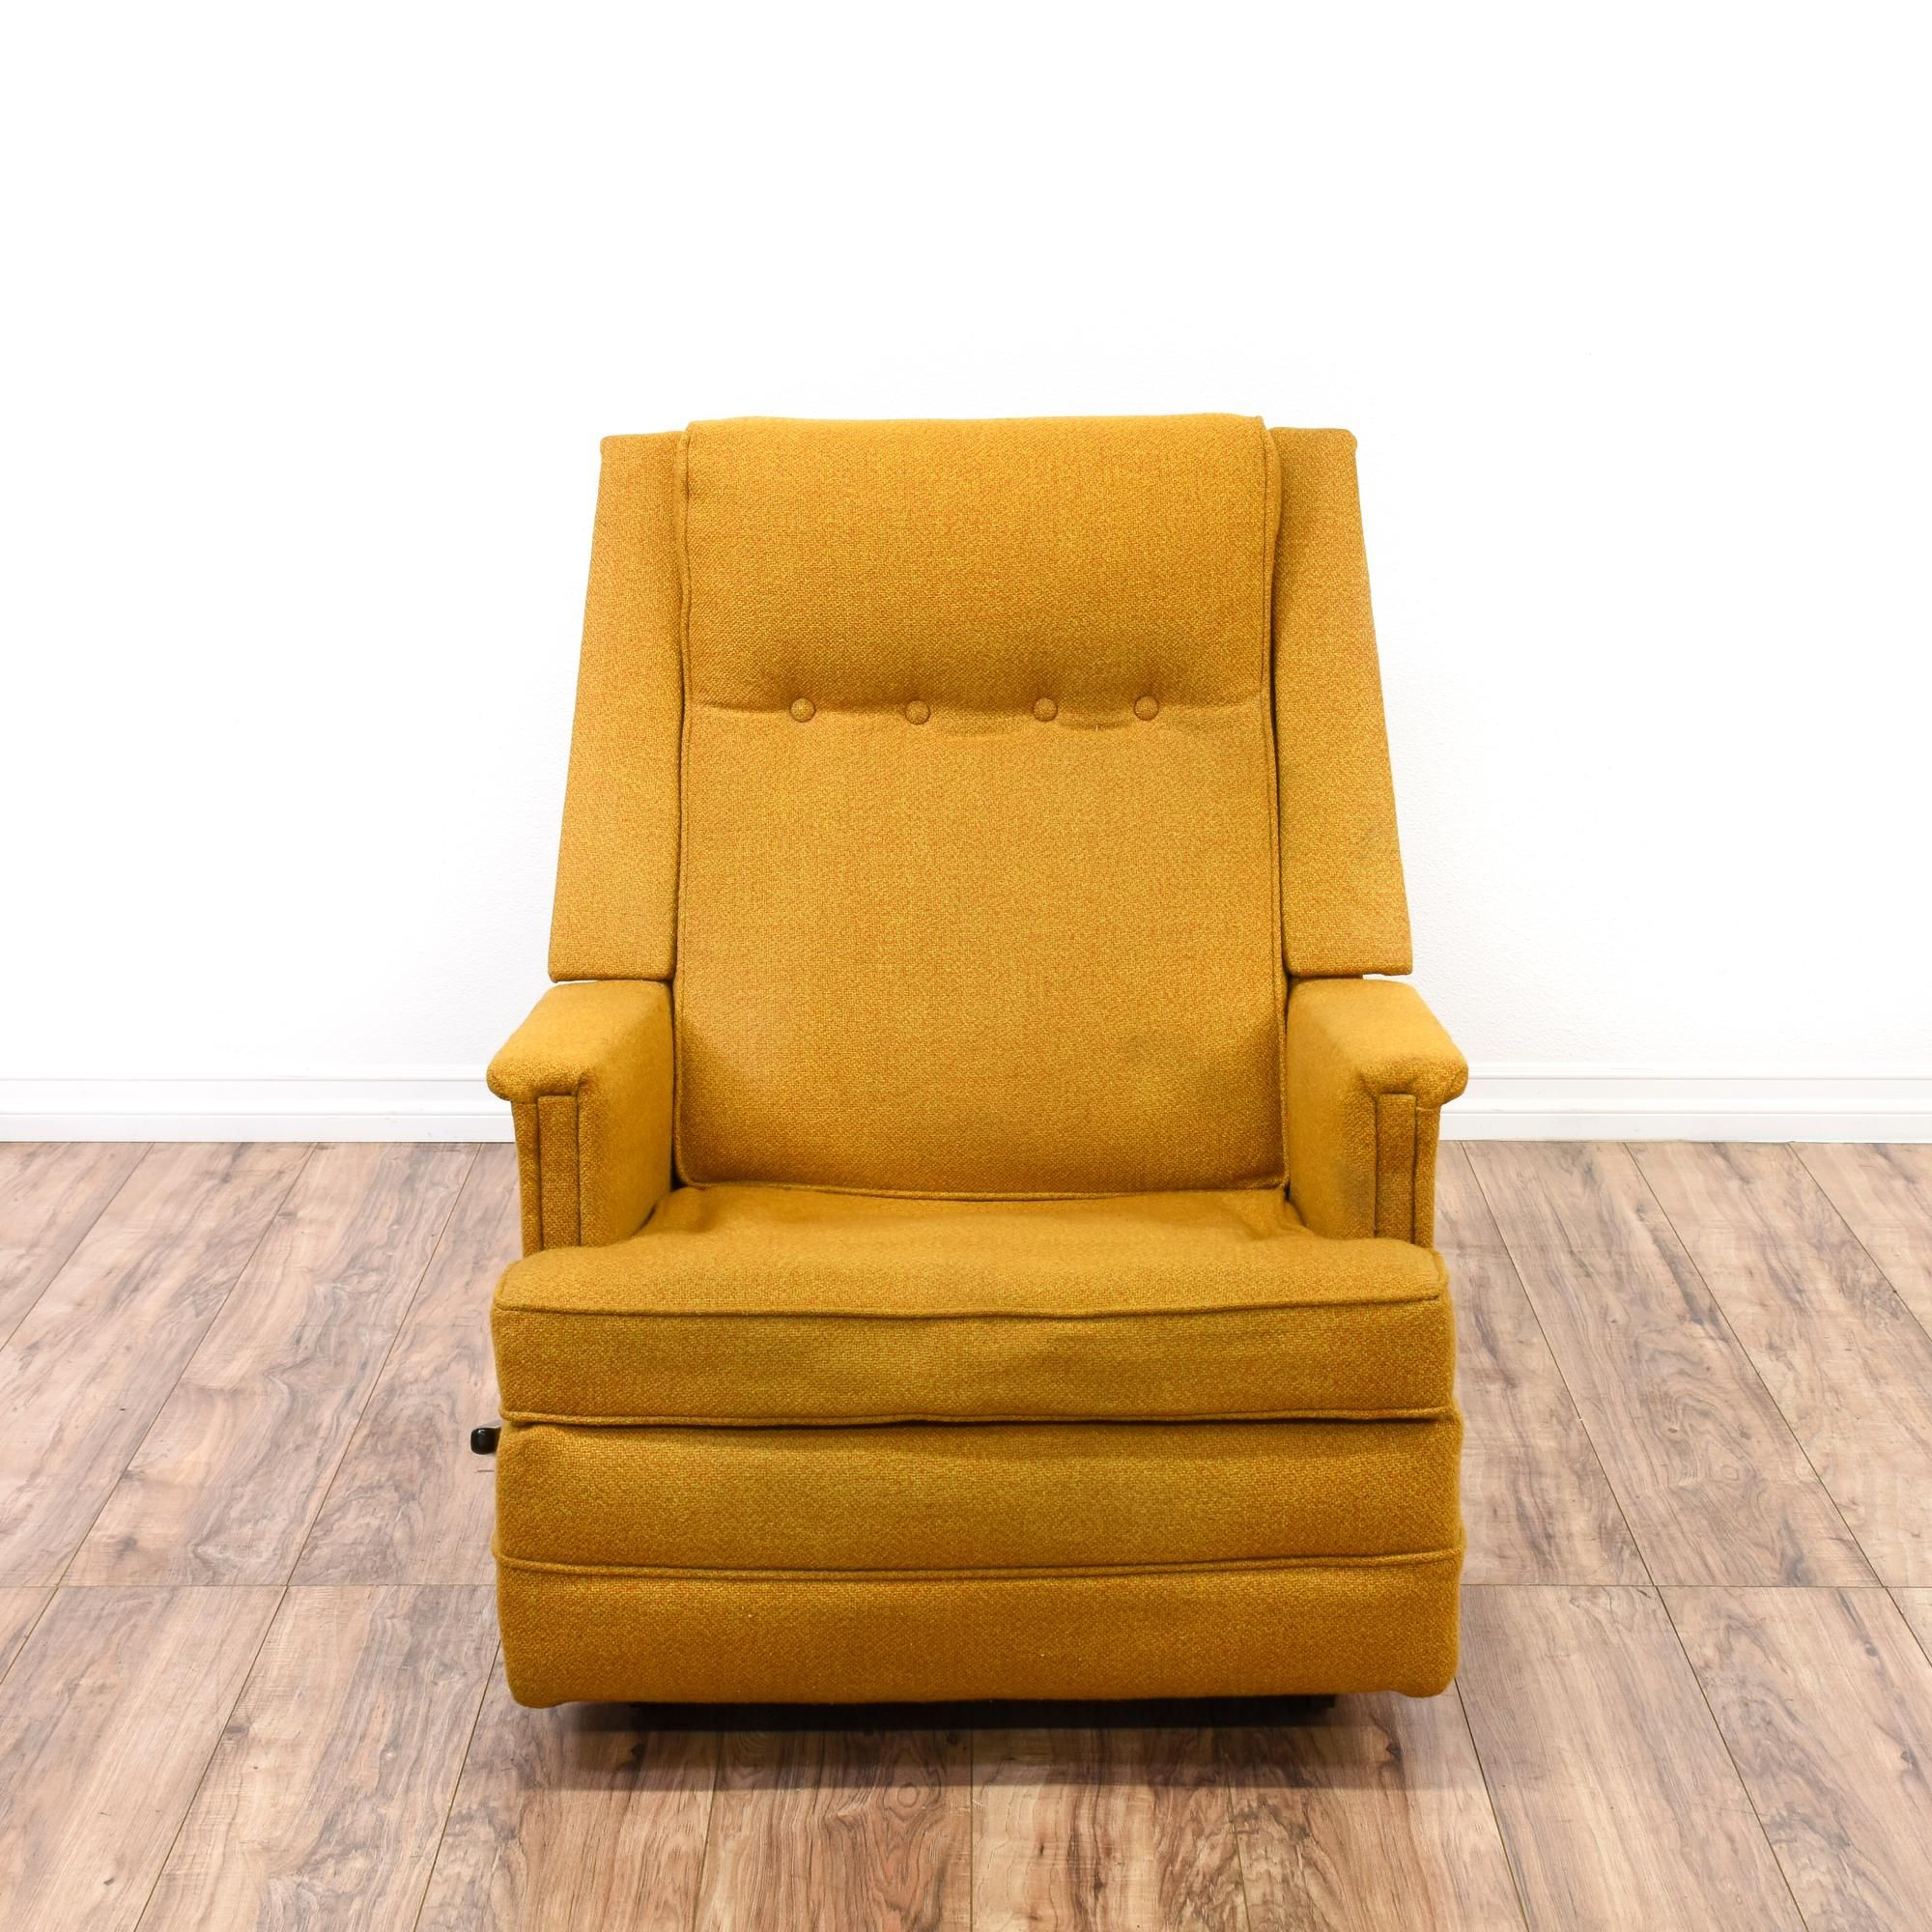 This rocking recliner chair is upholstered in a soft mustard fabric. This mid century modern style armchair has a button tufted back comfortable seat ...  sc 1 st  Pinterest & Mid Century Modern Recliner Chair in the Baughman Style/Low ... islam-shia.org